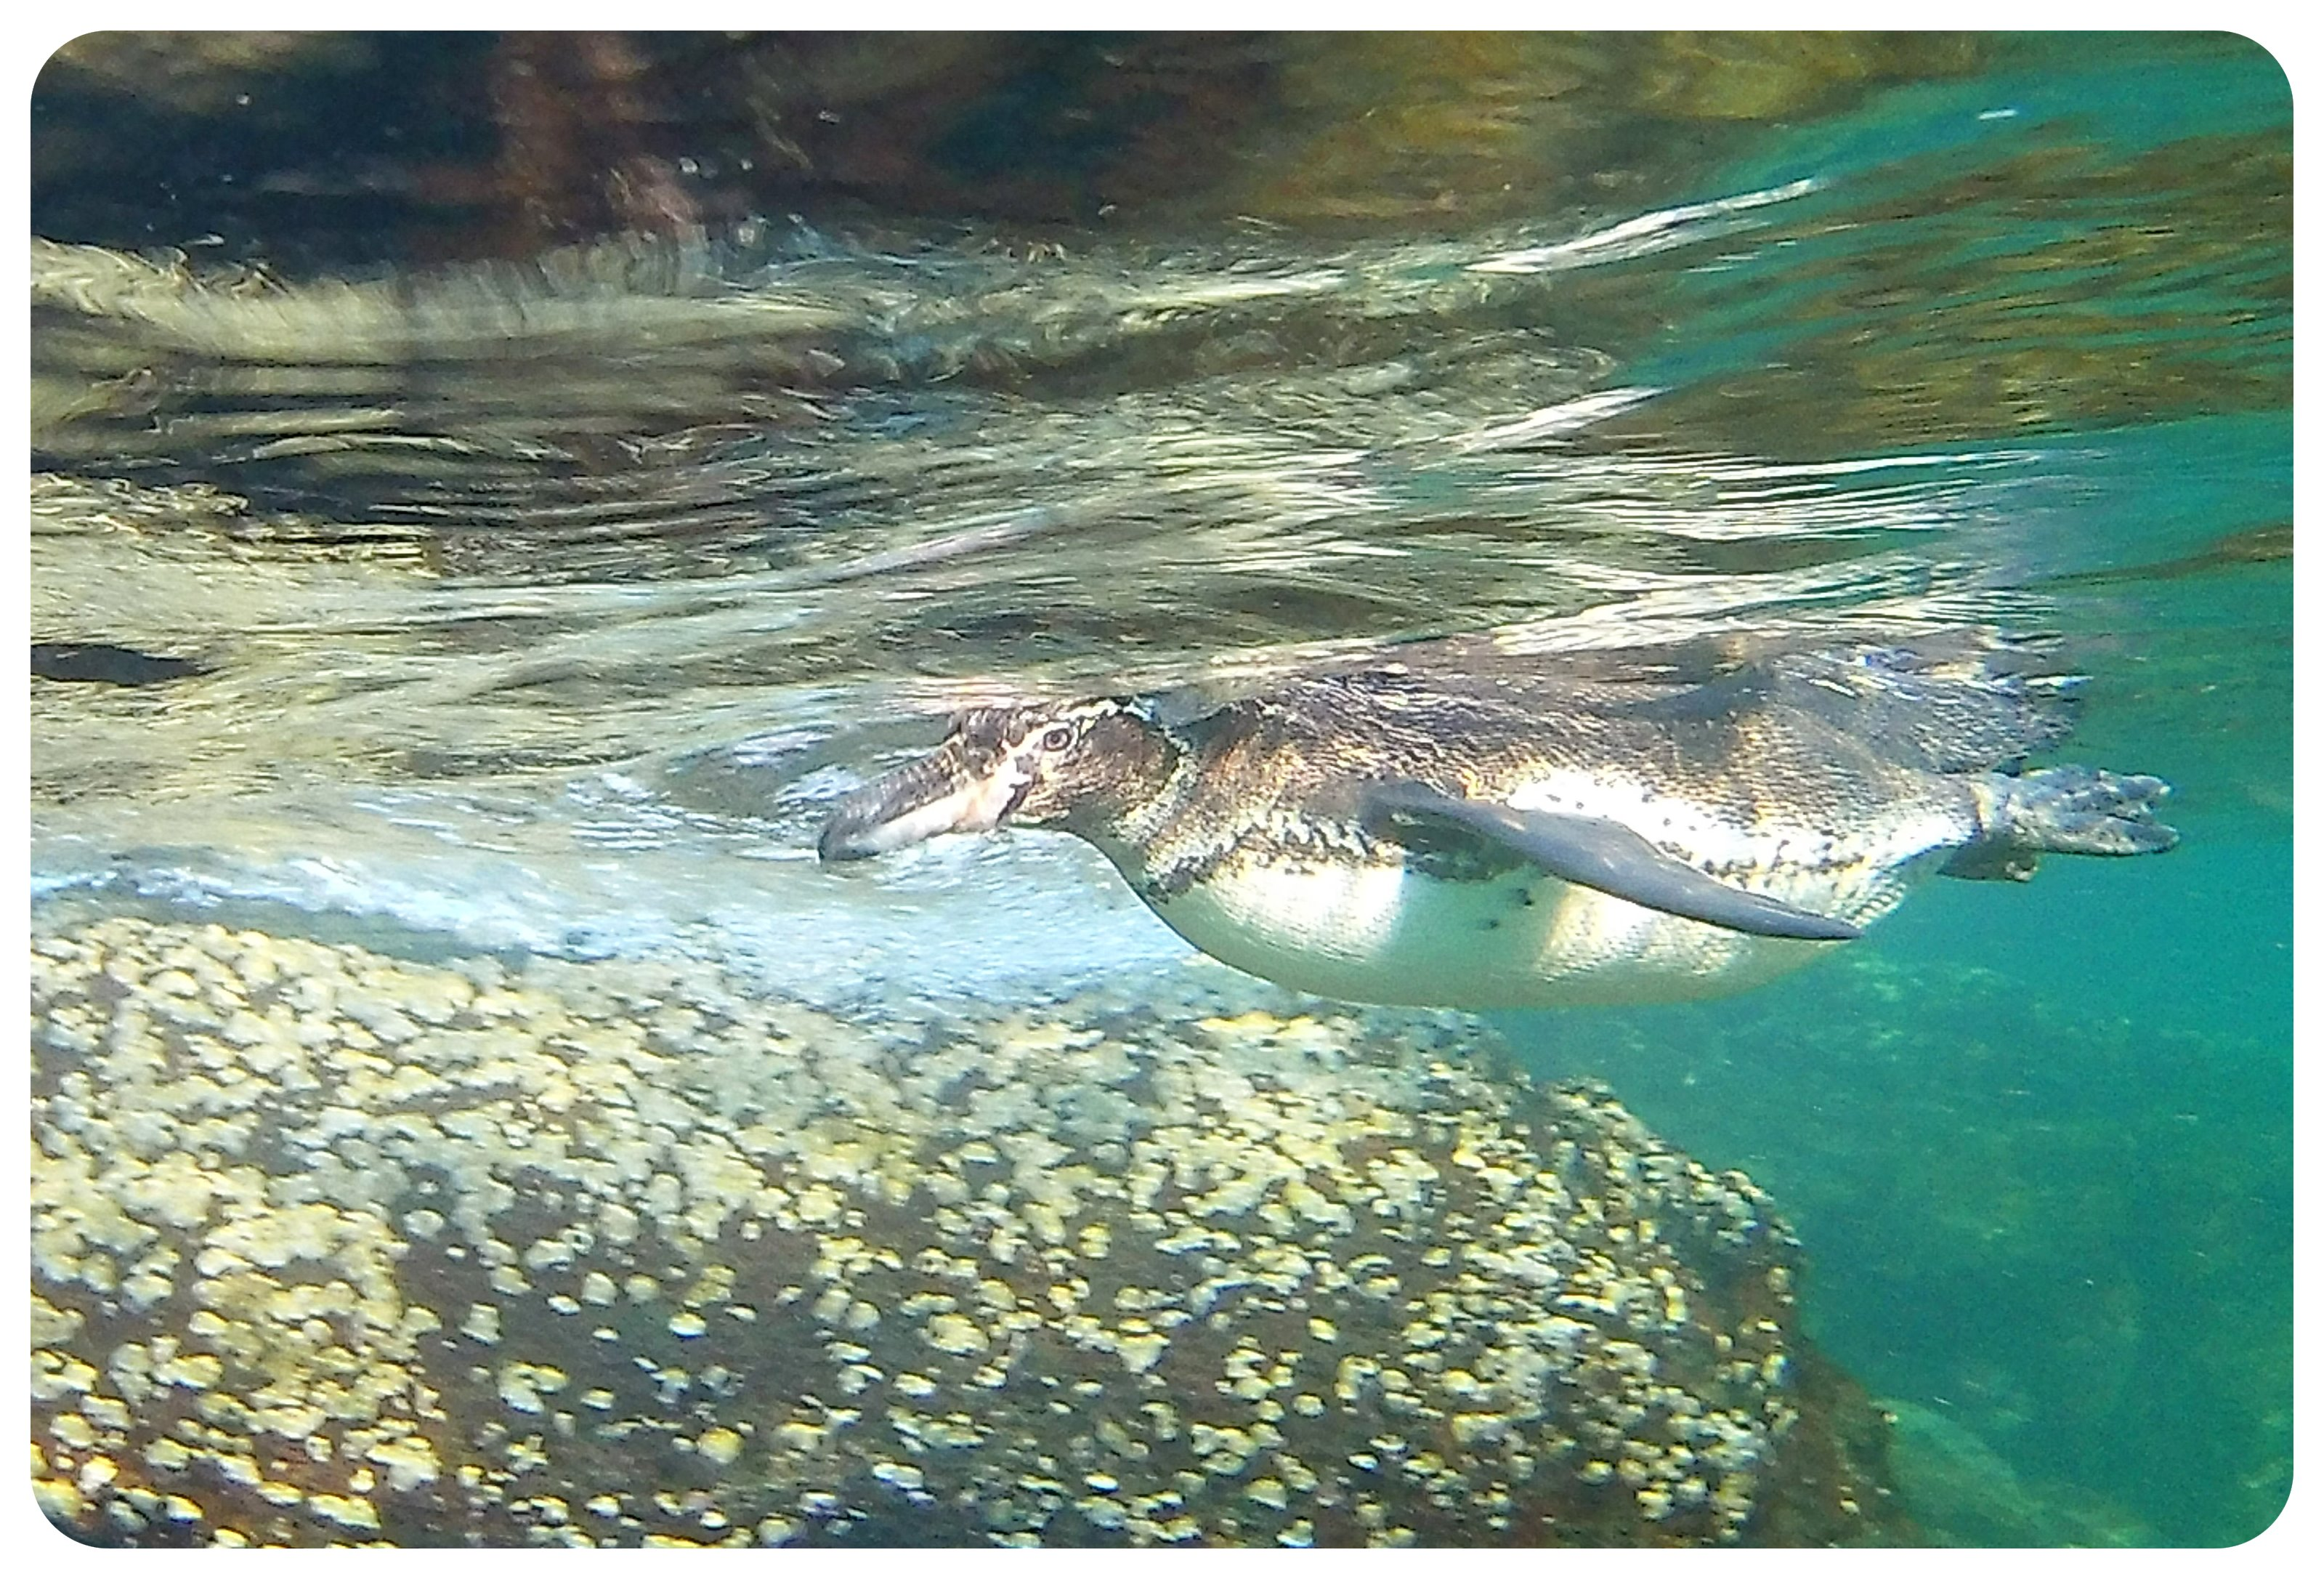 galapagos penguin in the water